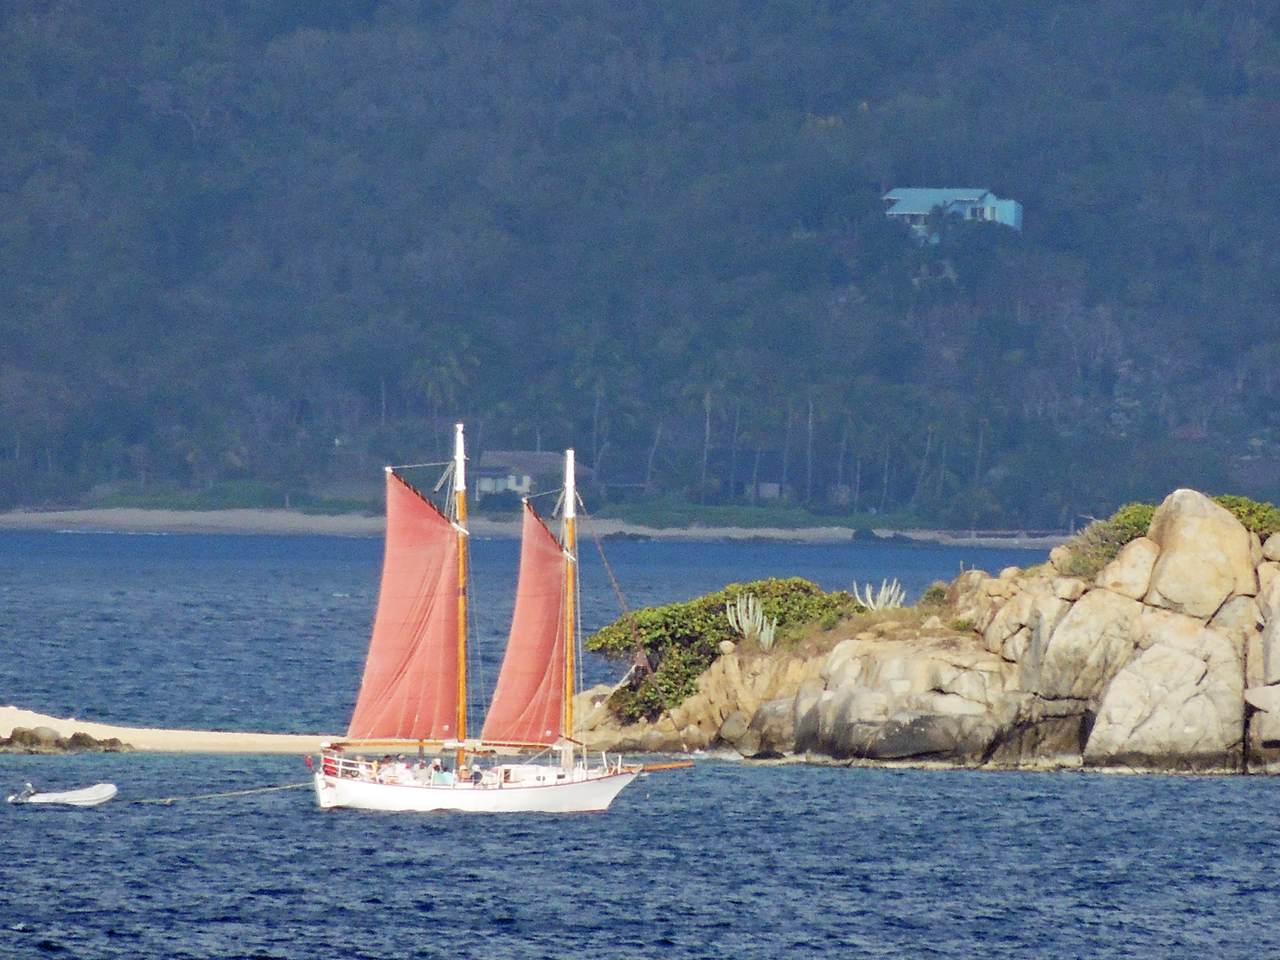 sailboat in Straits of Magellan